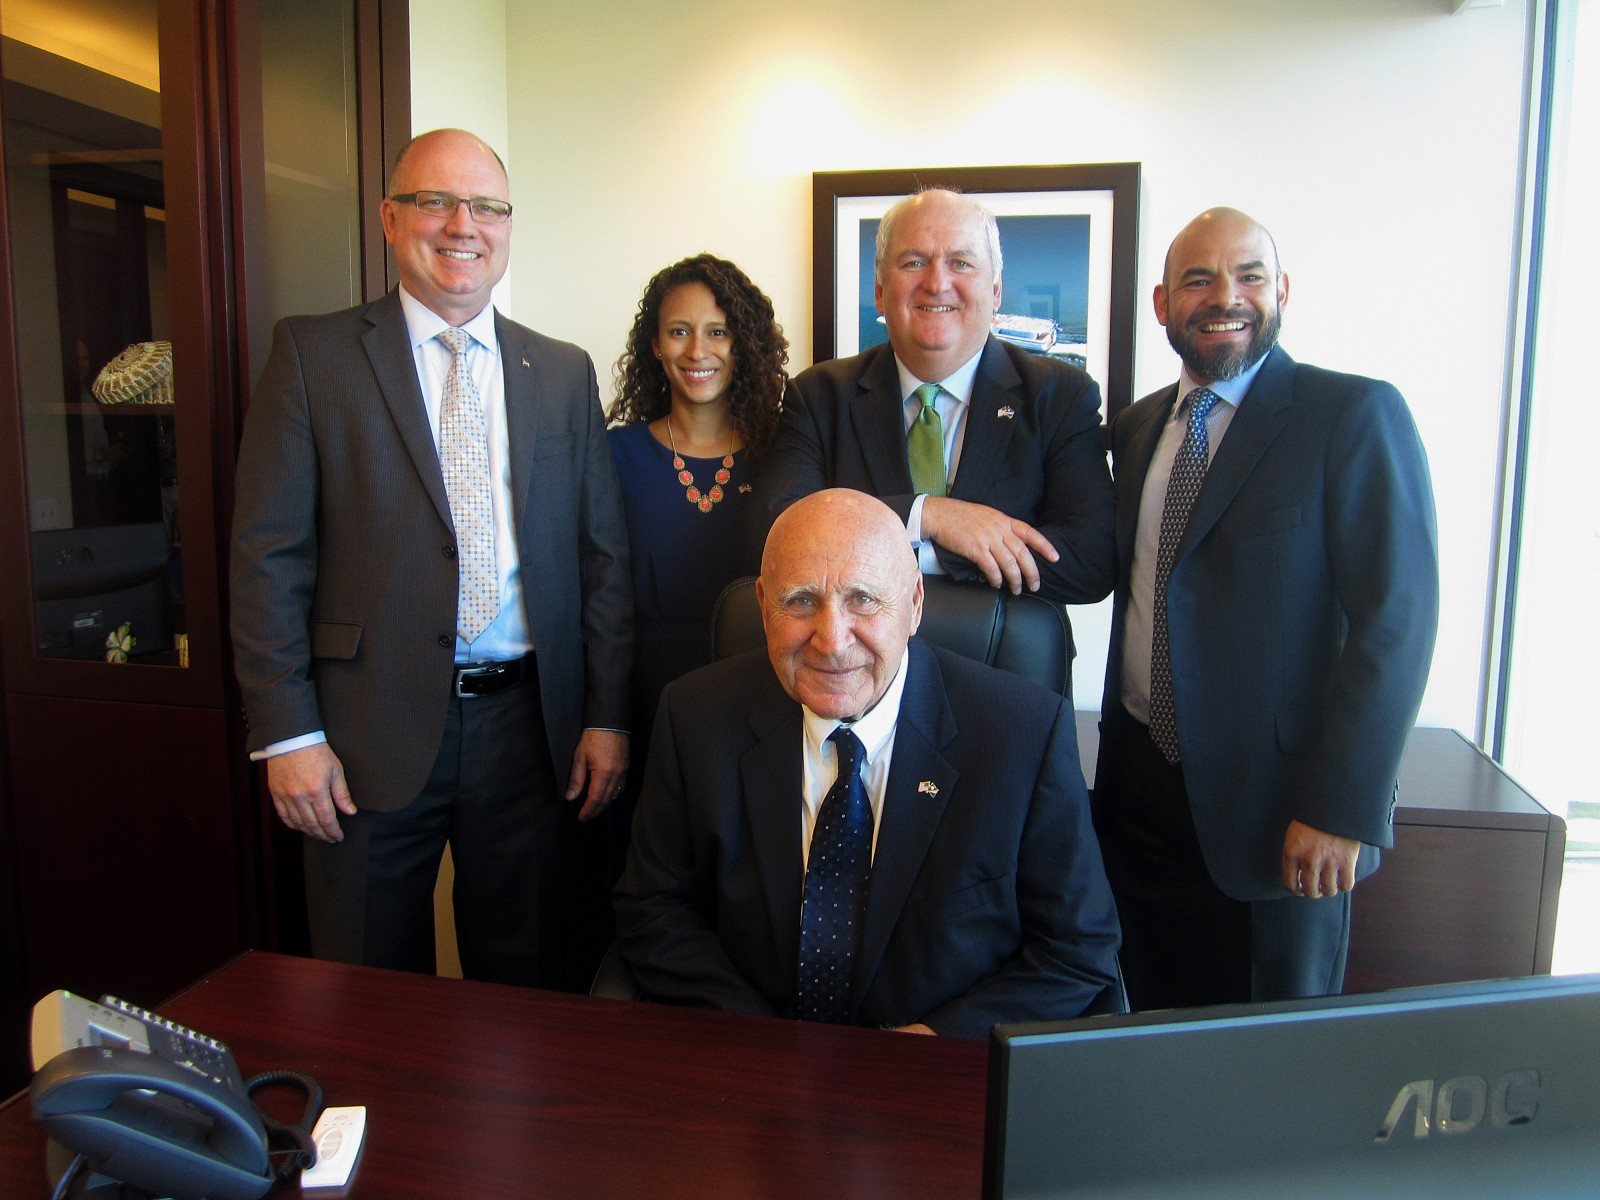 "From left, Vice President of Manning and Training Capt. John Hafner, Business Development Manager for the yachts division Ionna Hernandez, Managing Partner F.A. ""Tony"" Guida (sitting), Managing Partner/President William Gallagher, and General Manager Diego Ramirez. PHOTO/LUCY REED"